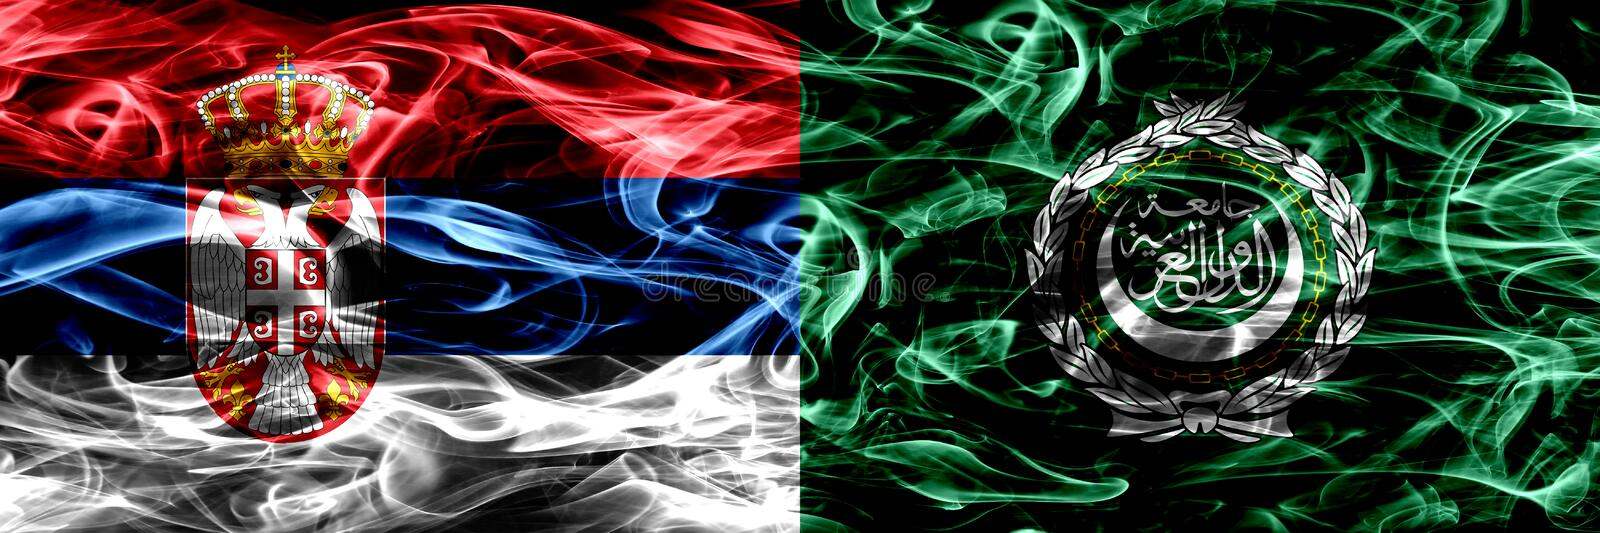 Serbia vs Arab League smoke flags placed side by side. Thick col royalty free stock photography